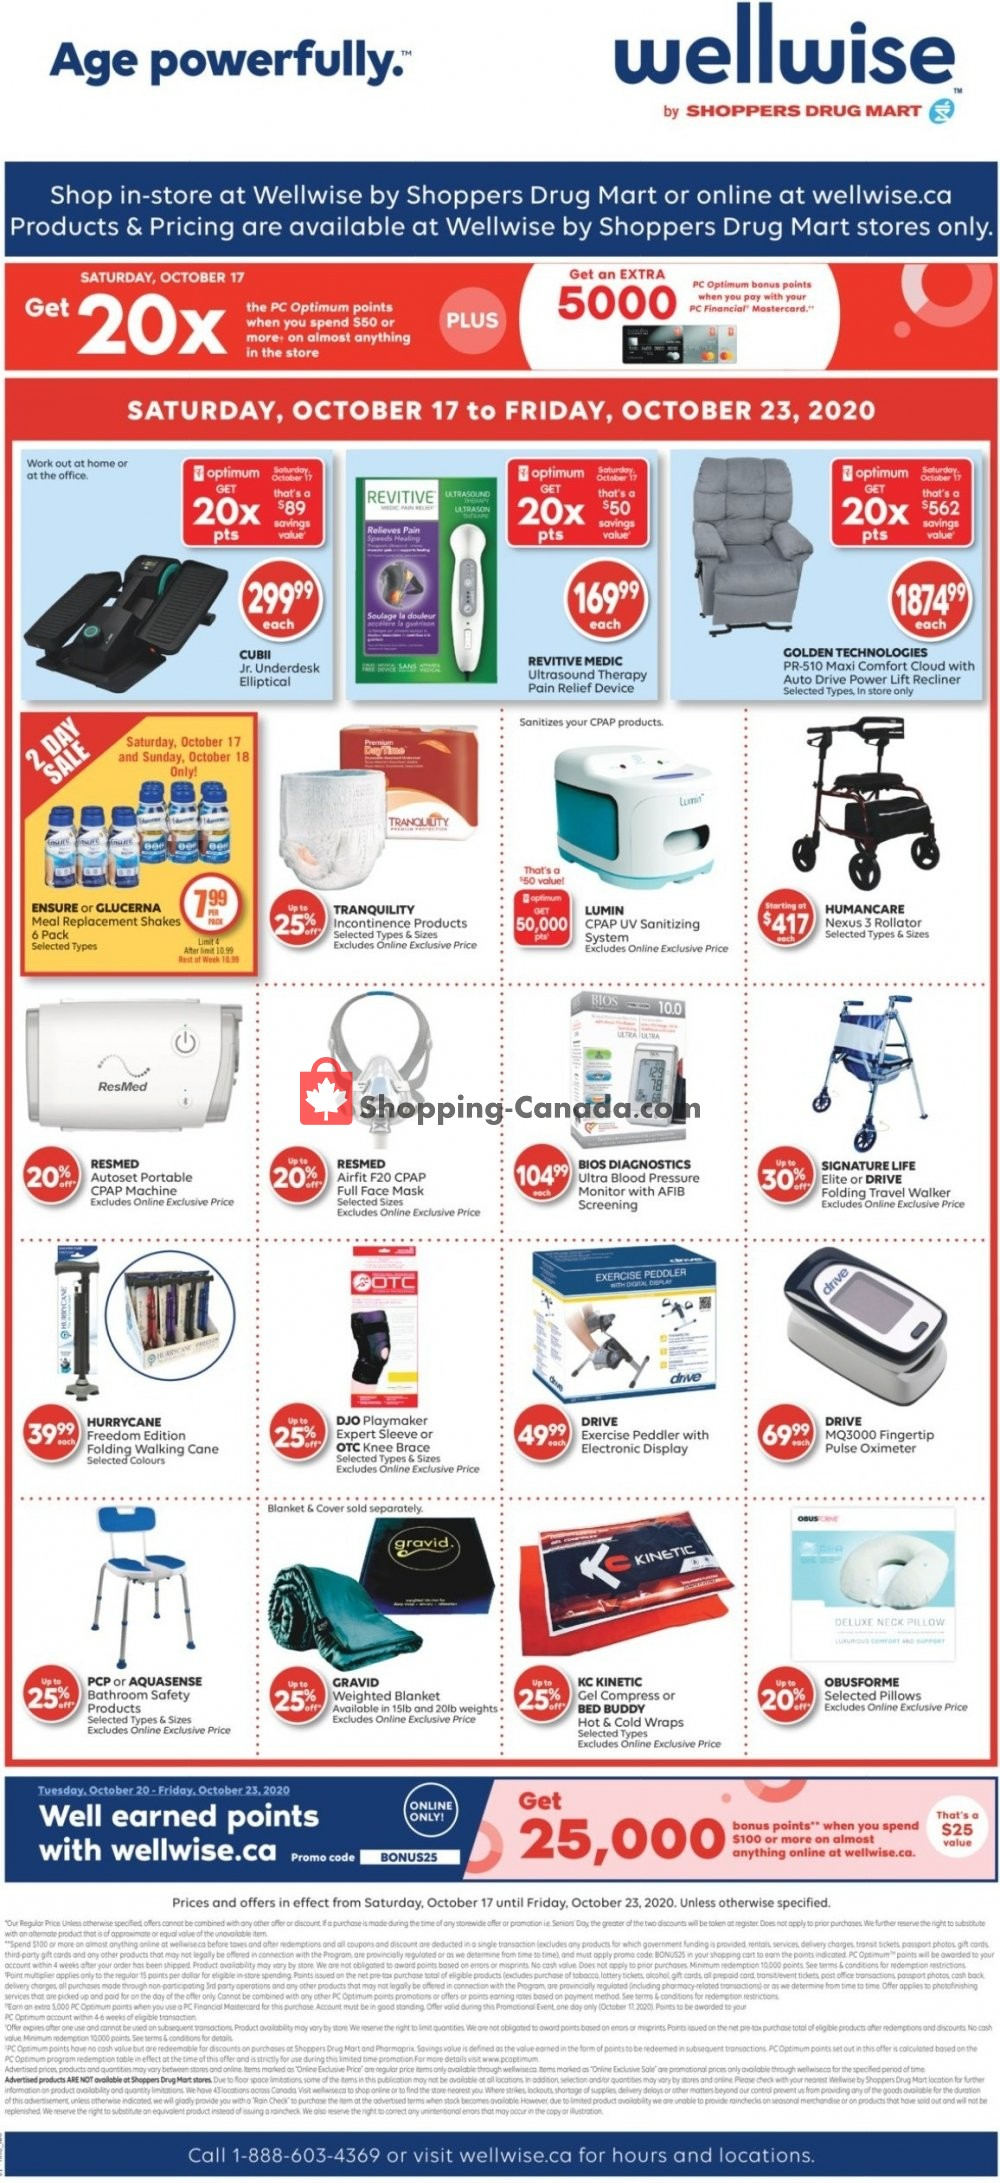 Flyer WellWise by Shoppers Drug Mart Canada - from Saturday October 17, 2020 to Friday October 23, 2020